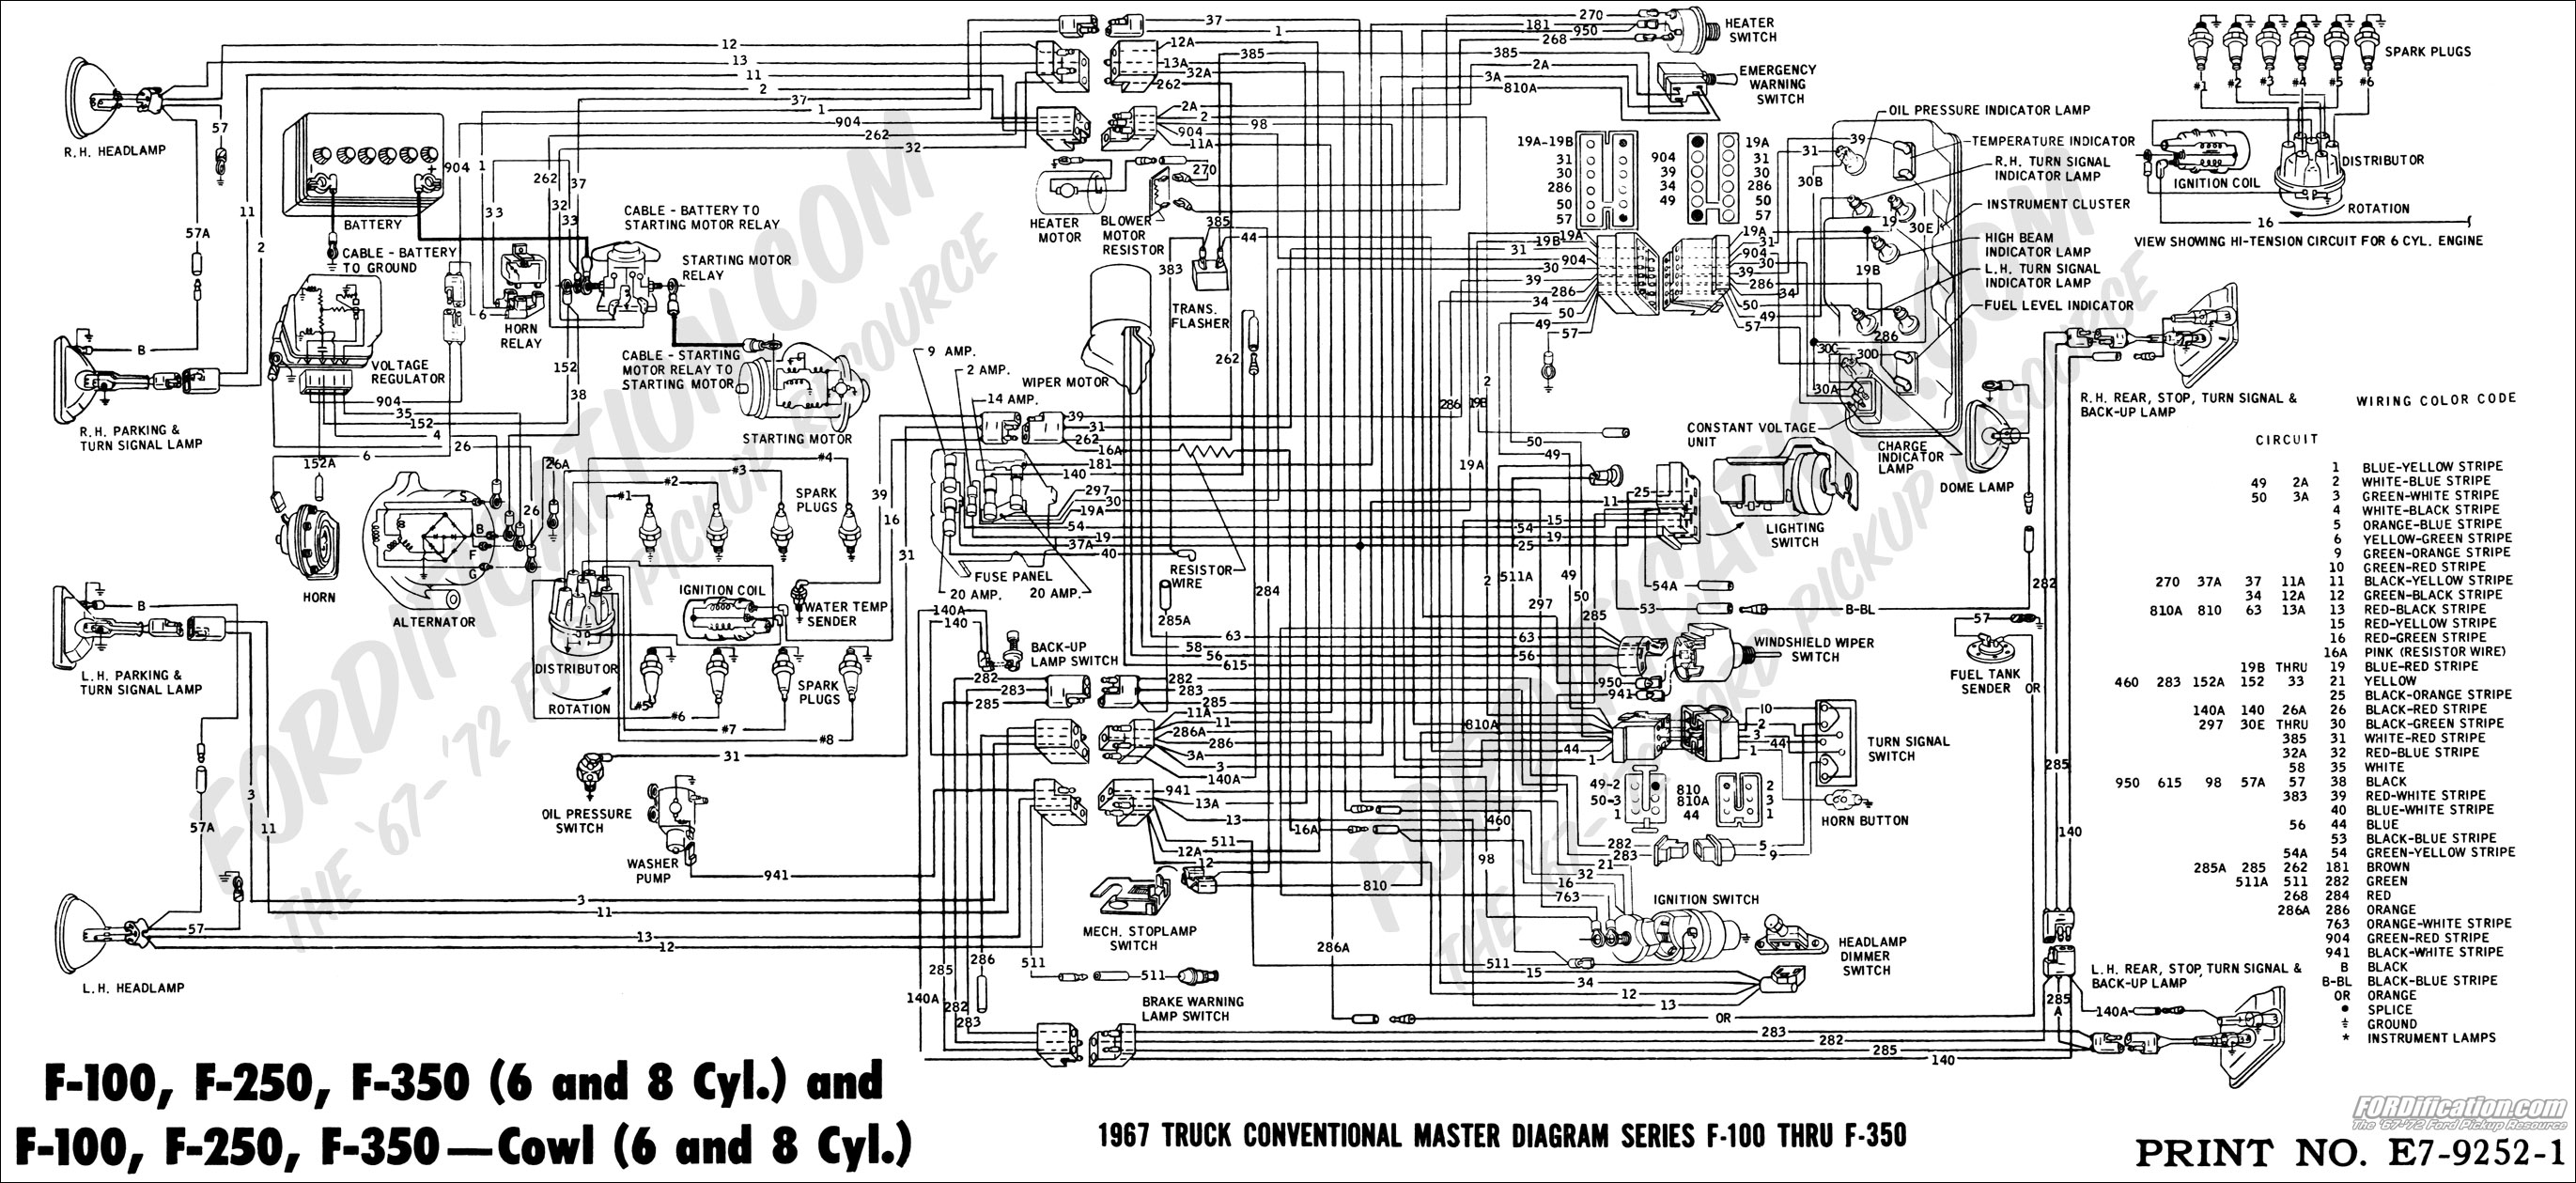 67masterdiagram ford truck technical drawings and schematics section h wiring f150 wiring diagram at gsmportal.co